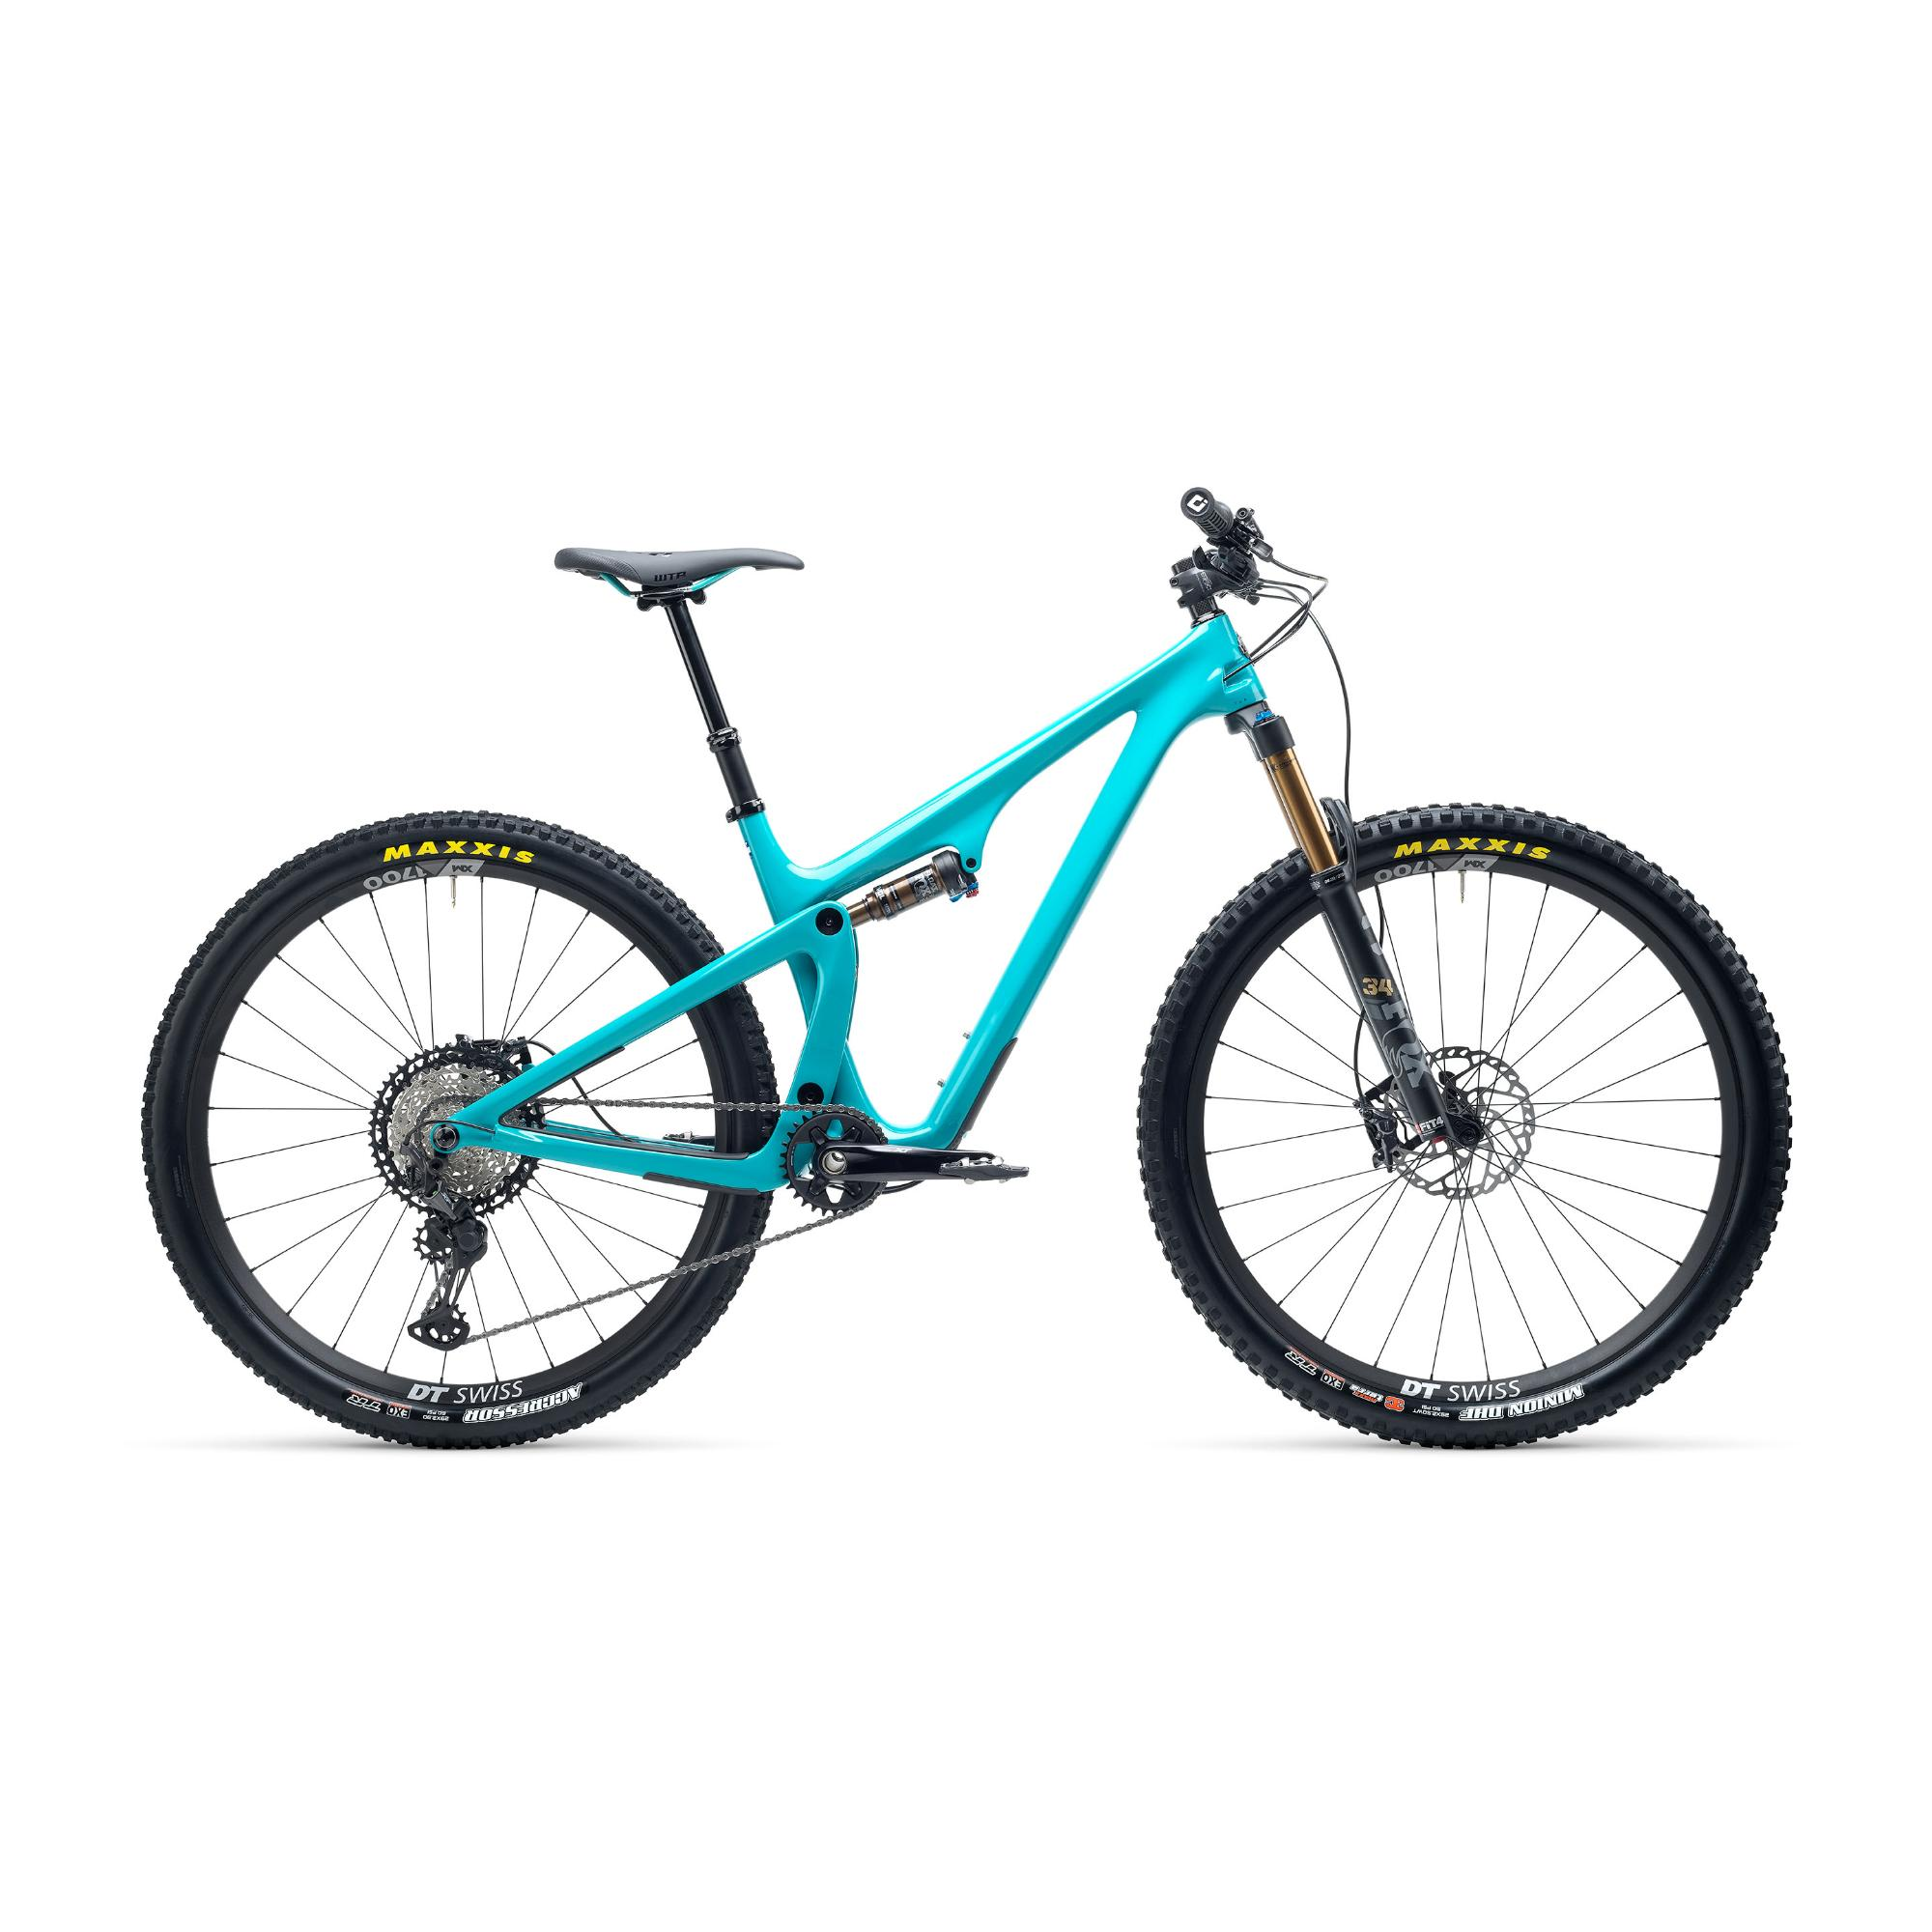 Yeti SB115 T-Series T1 29er Mountain Bike 2021 Turquoise